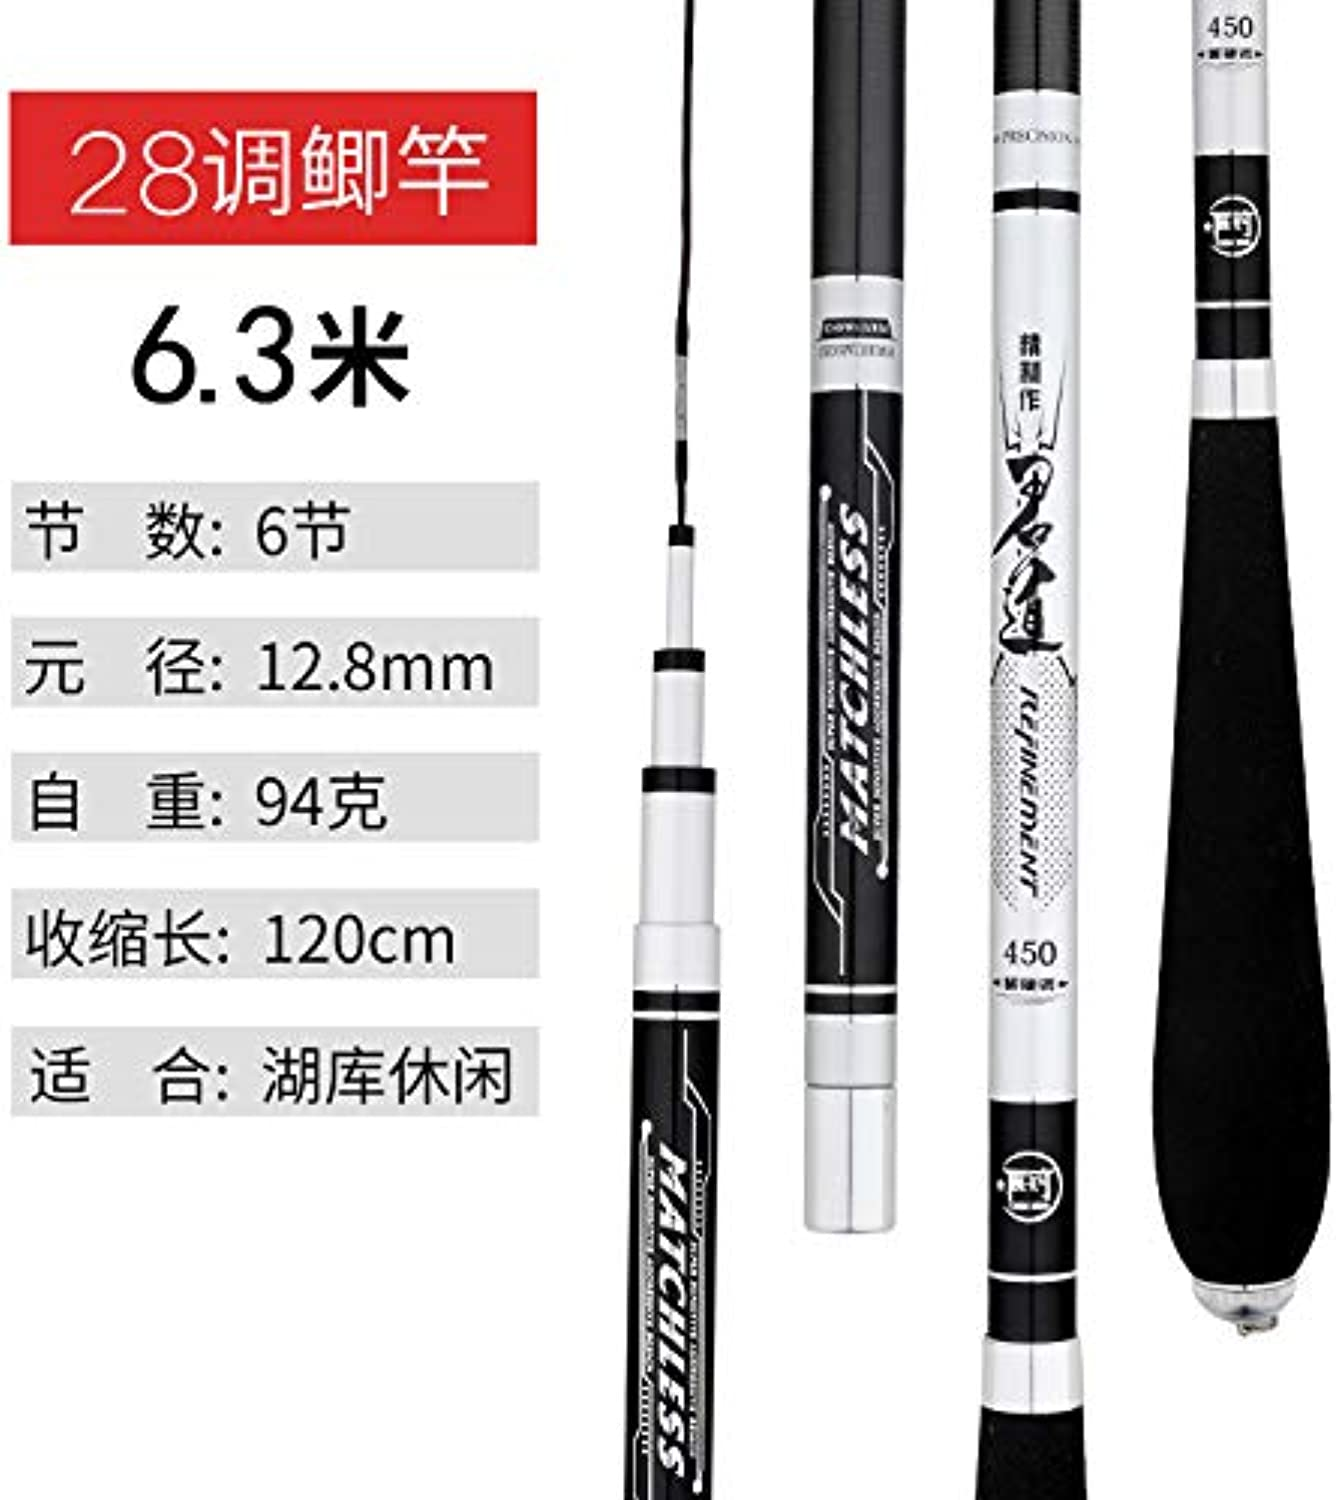 Chen Ultralight Fishing Rod Fishing Rod superhard Diaoji fine Tune Superfine 28 Taiwan Fishing Pole in Hand Carbon Fishing rods Imported from Japan